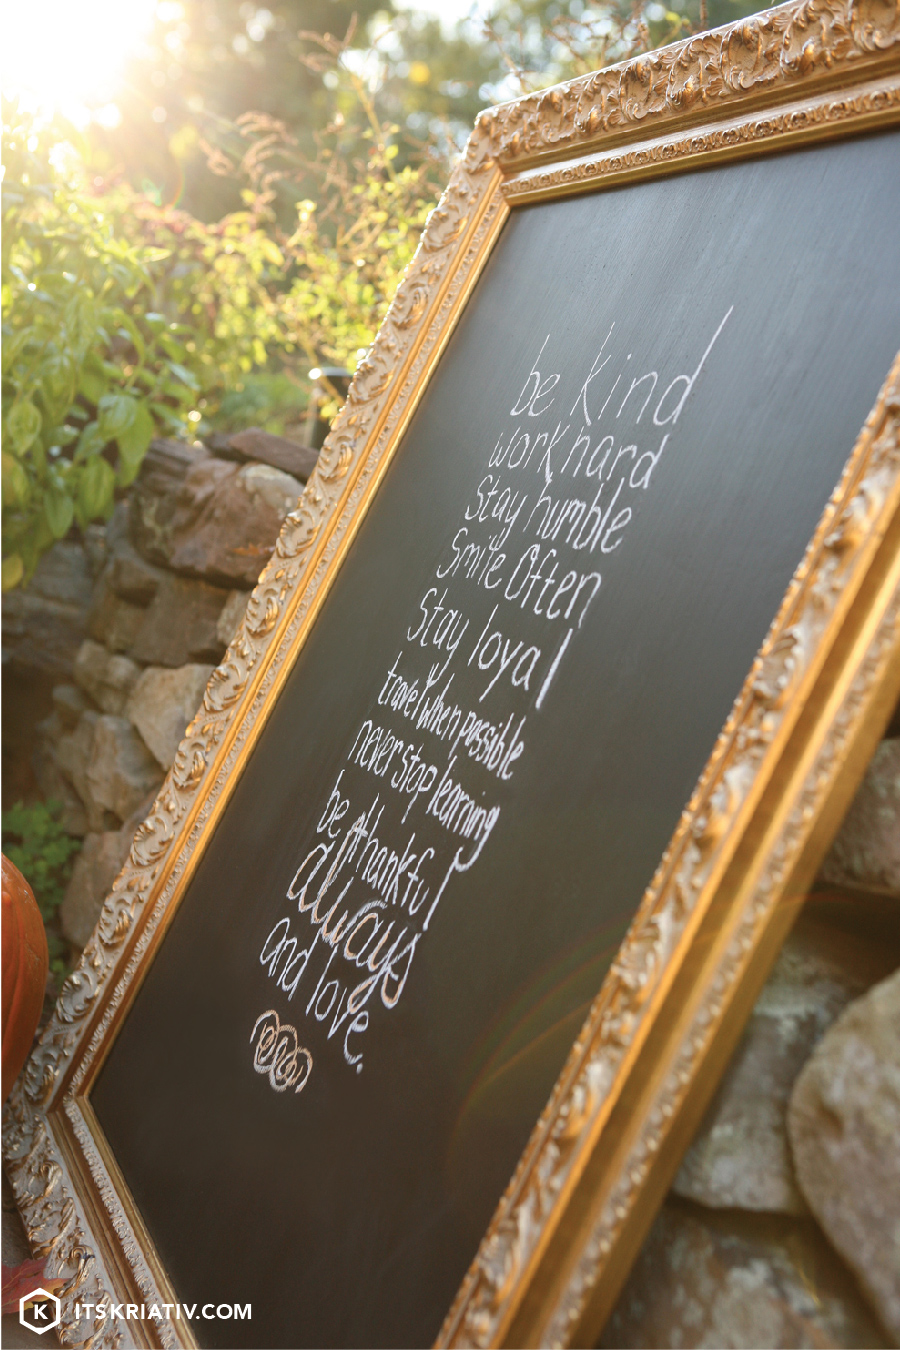 Oct_13_Decor-DIY-ChalkBoard-01a-08.jpg